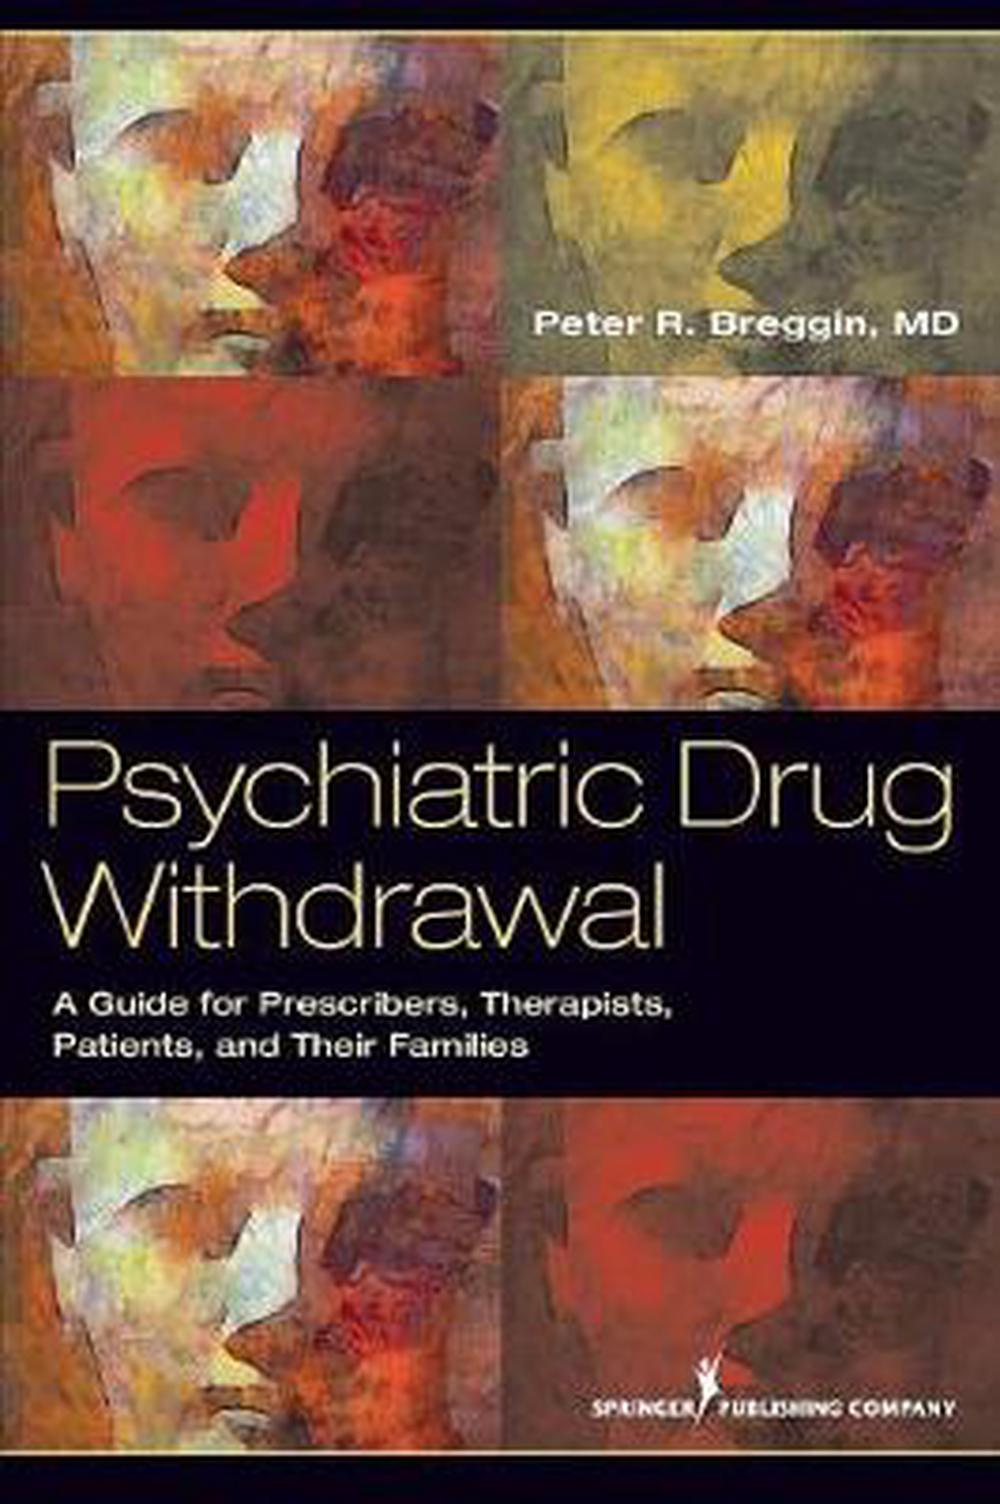 Psychiatric Drug Withdrawal by Peter Roger Breggin, ISBN: 9780826108432